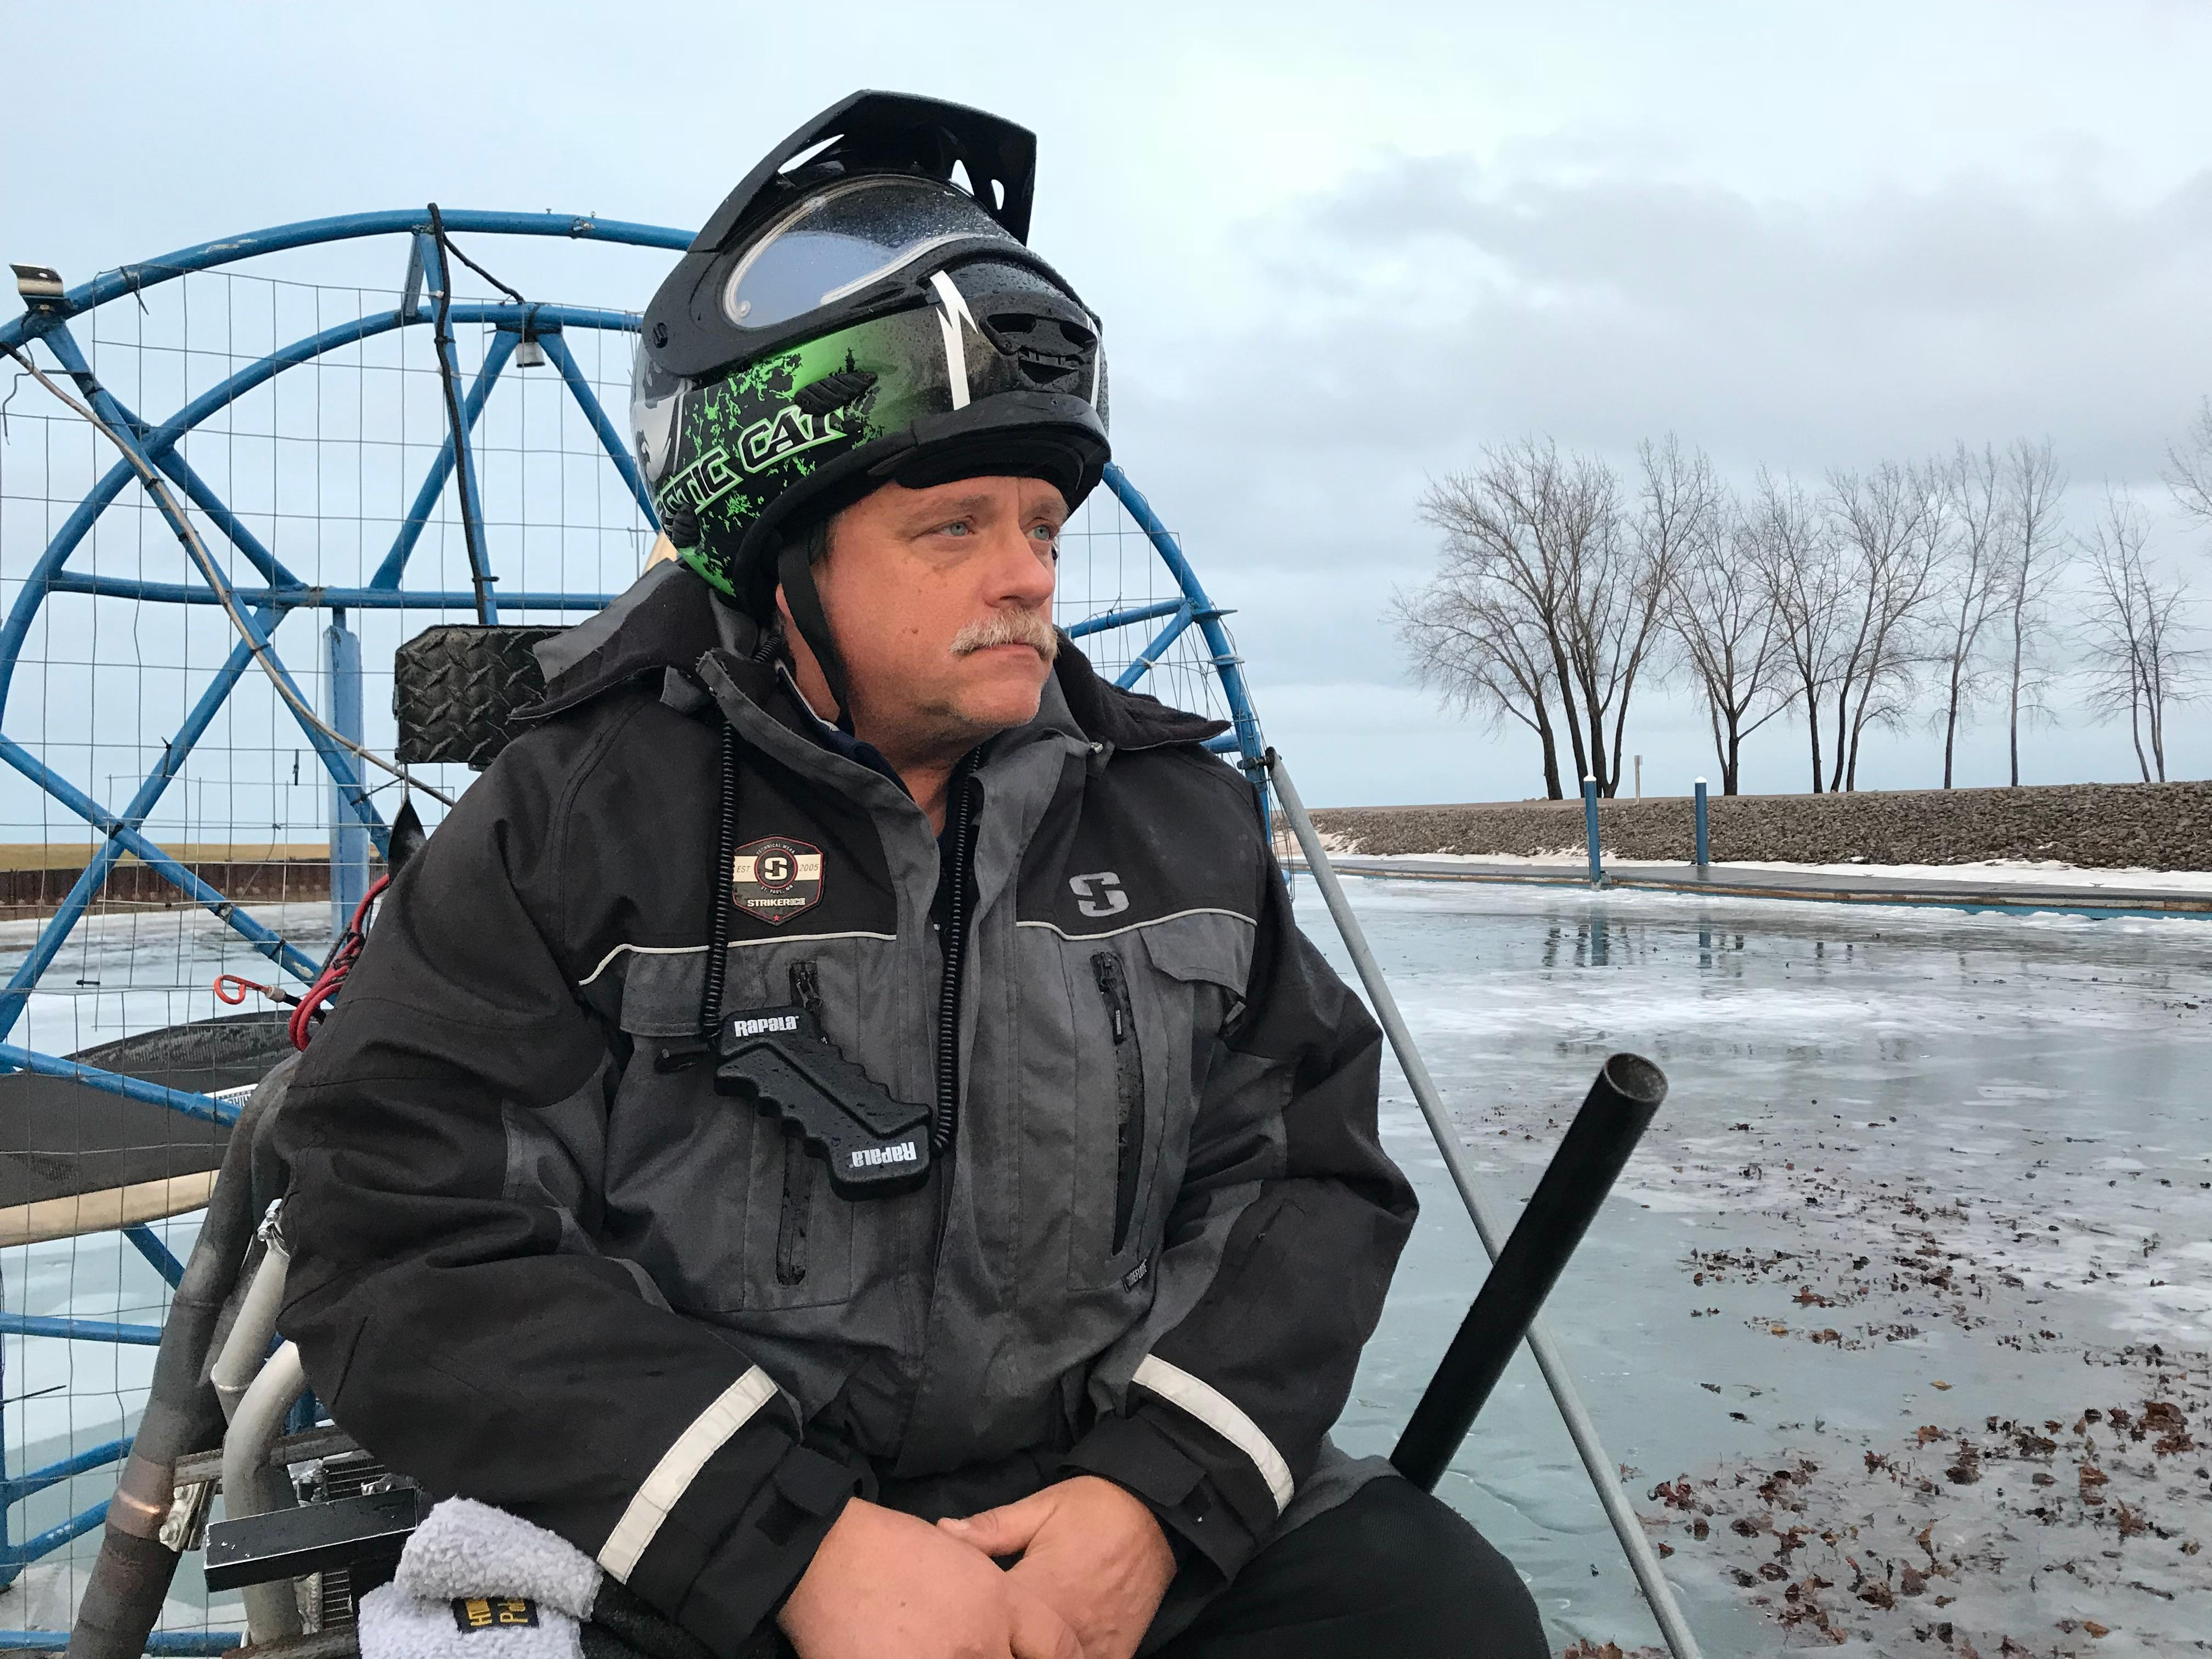 Local heroes use their own air boats to save ice fisherman Wednesday night. (Photo credit: Jesse Gonzales)<p></p>